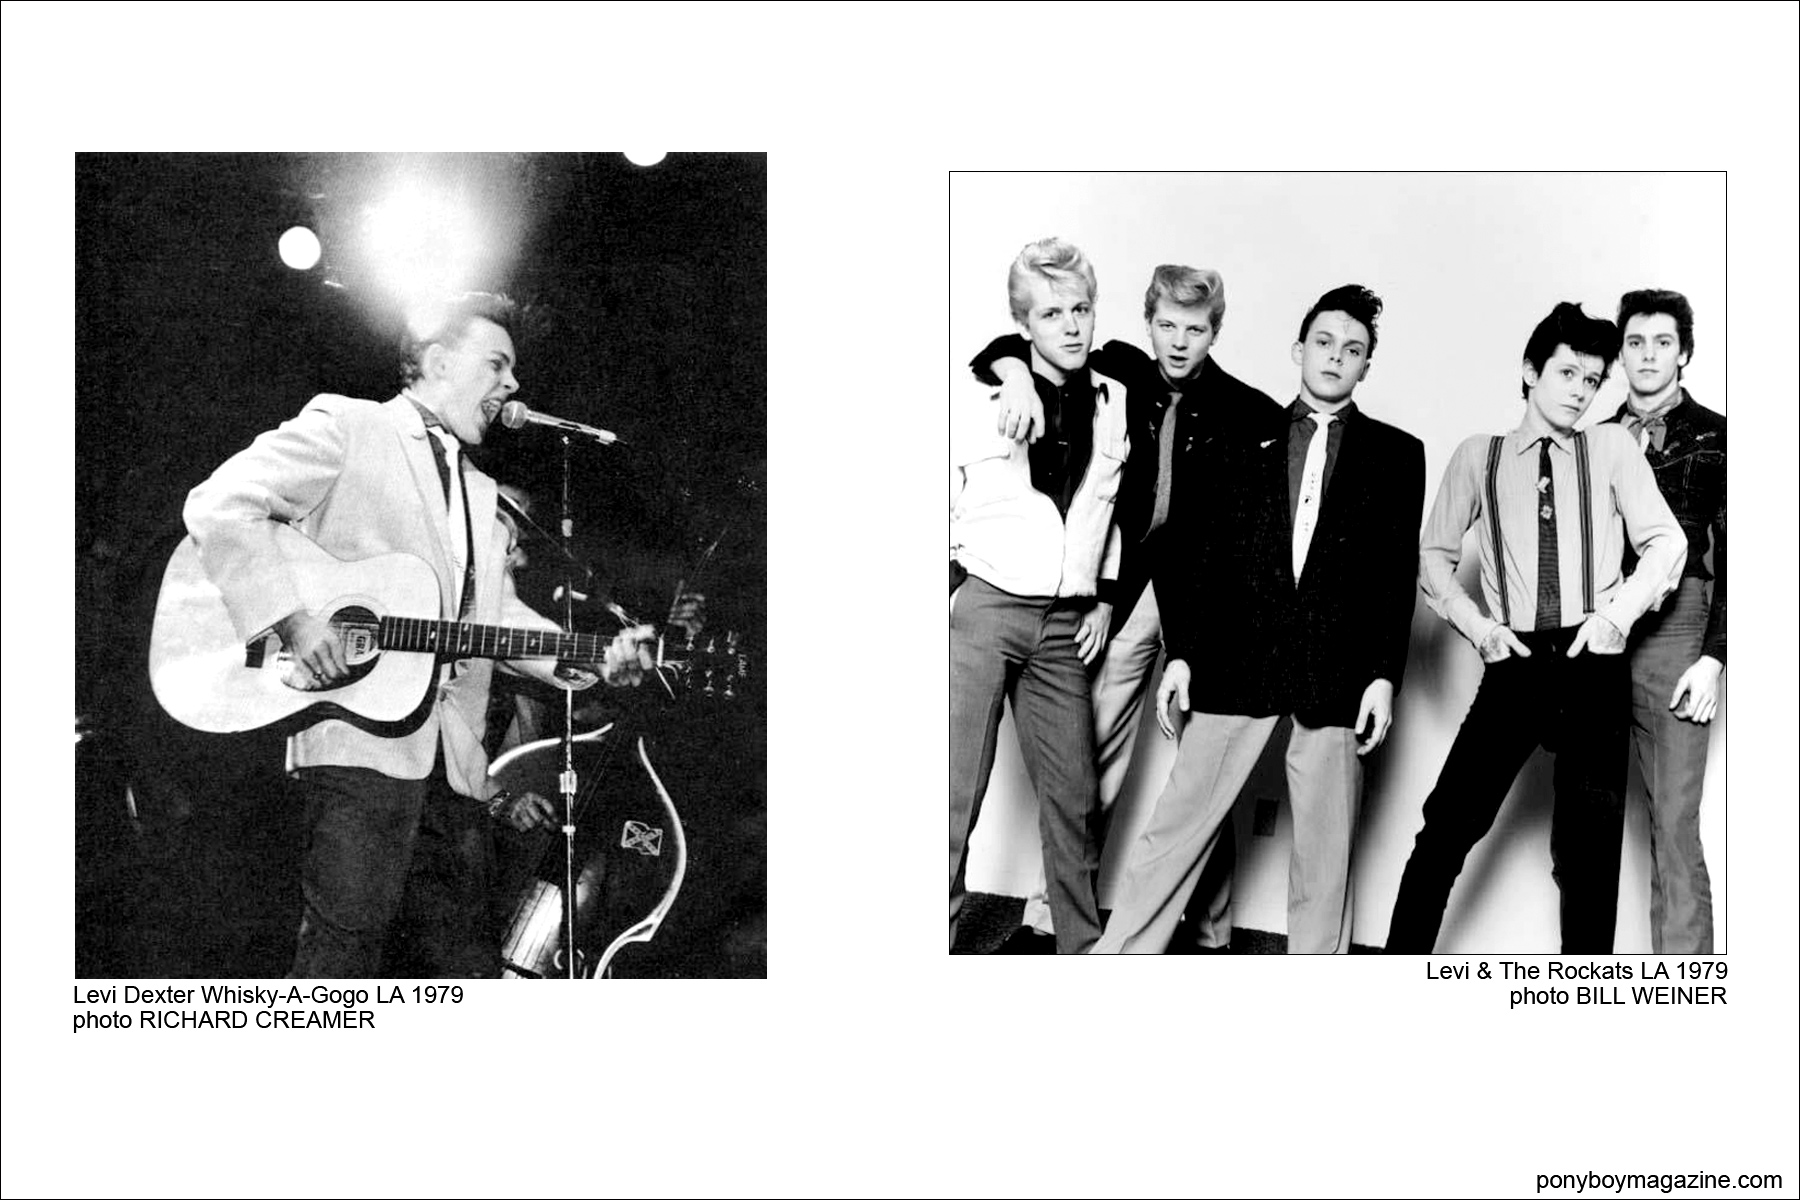 Old b&w photos of Rockabilly band Levi & The Rockats for Ponyboy Magazine.